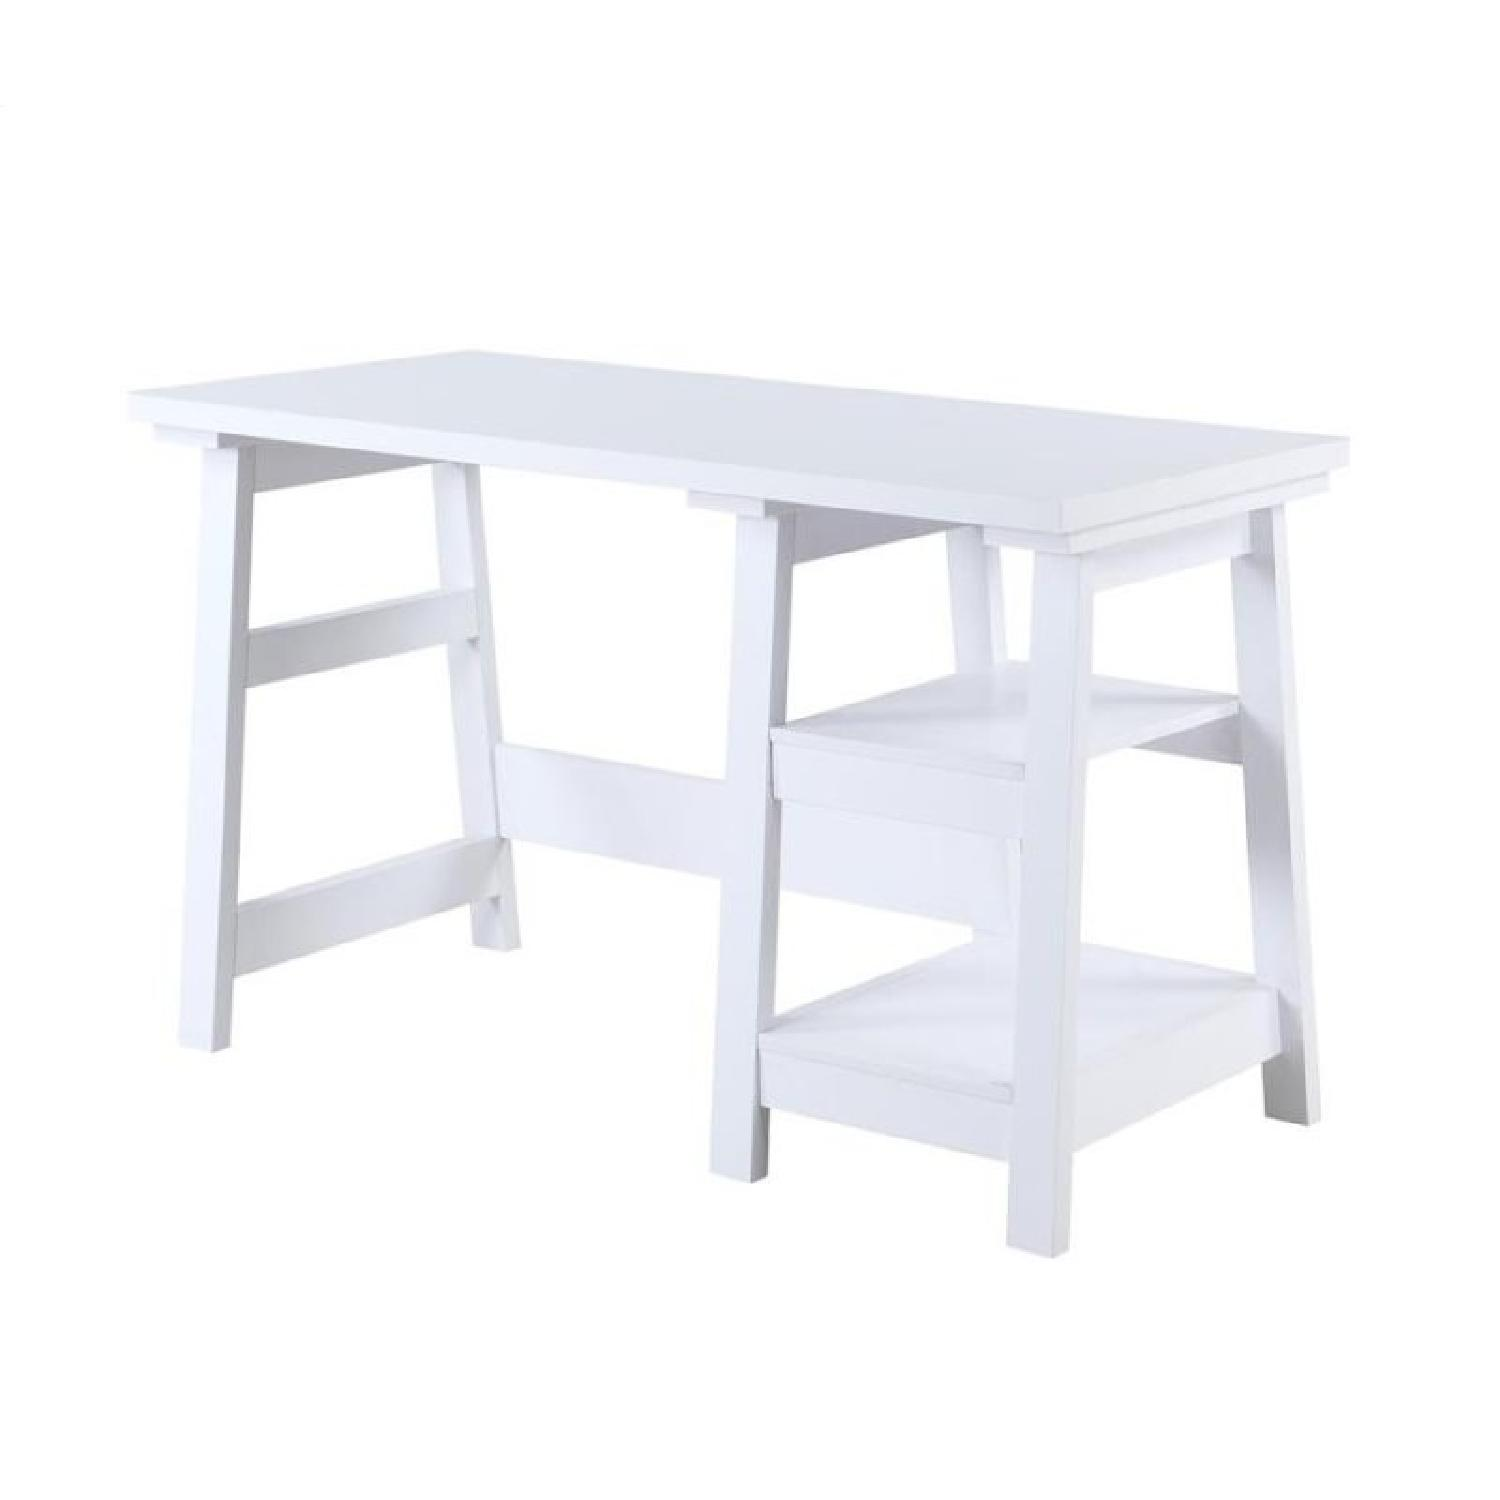 Simple Writing Desk W Tier Shelves In White Finish Aptdeco